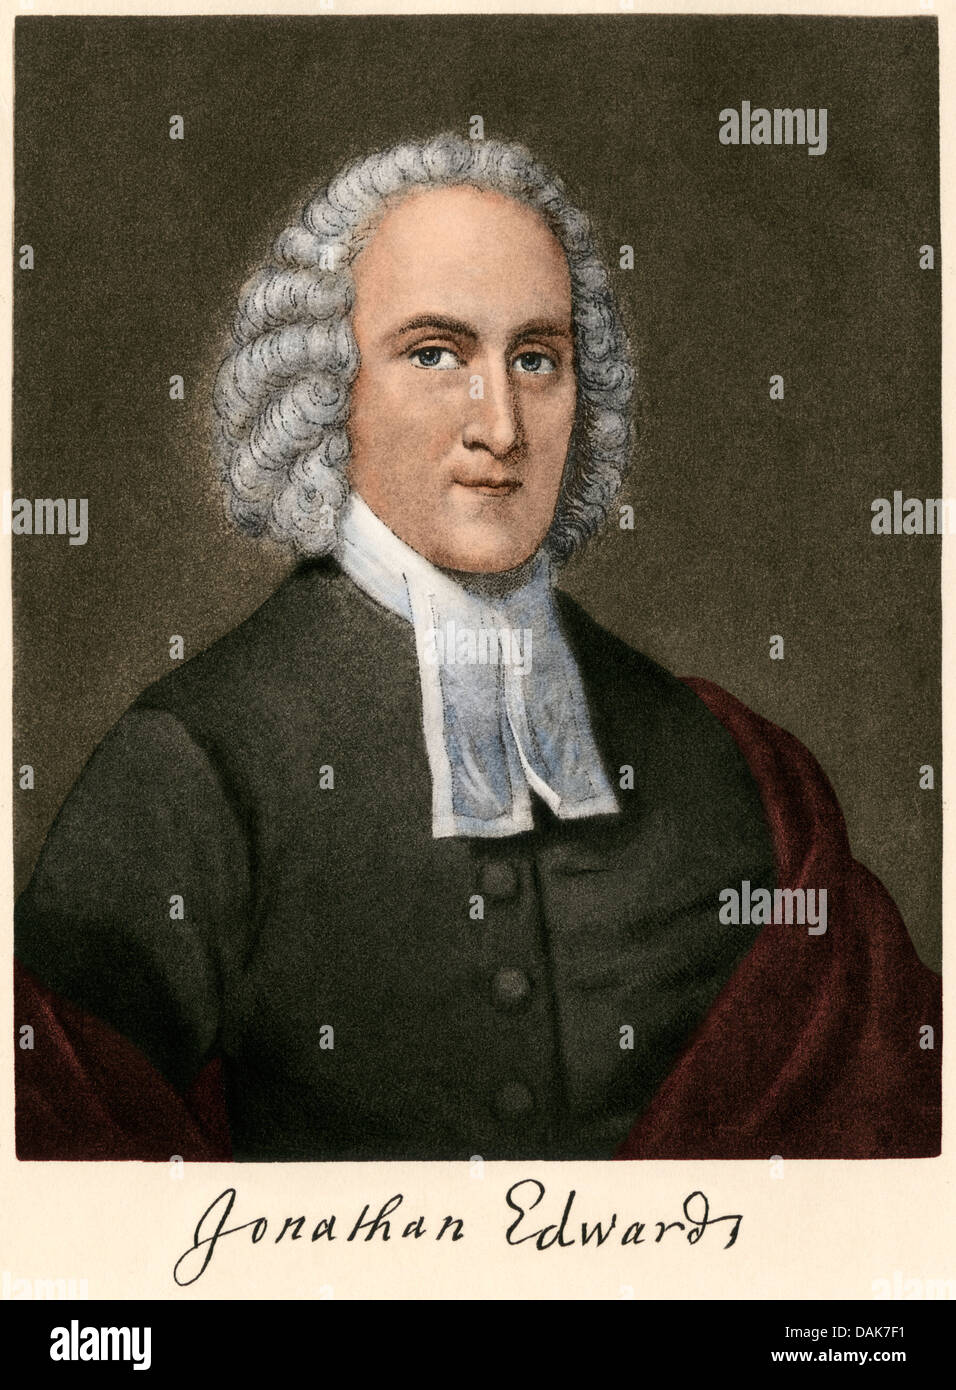 Jonathan Edwards, with autograph. Digitally colored engraving - Stock Image